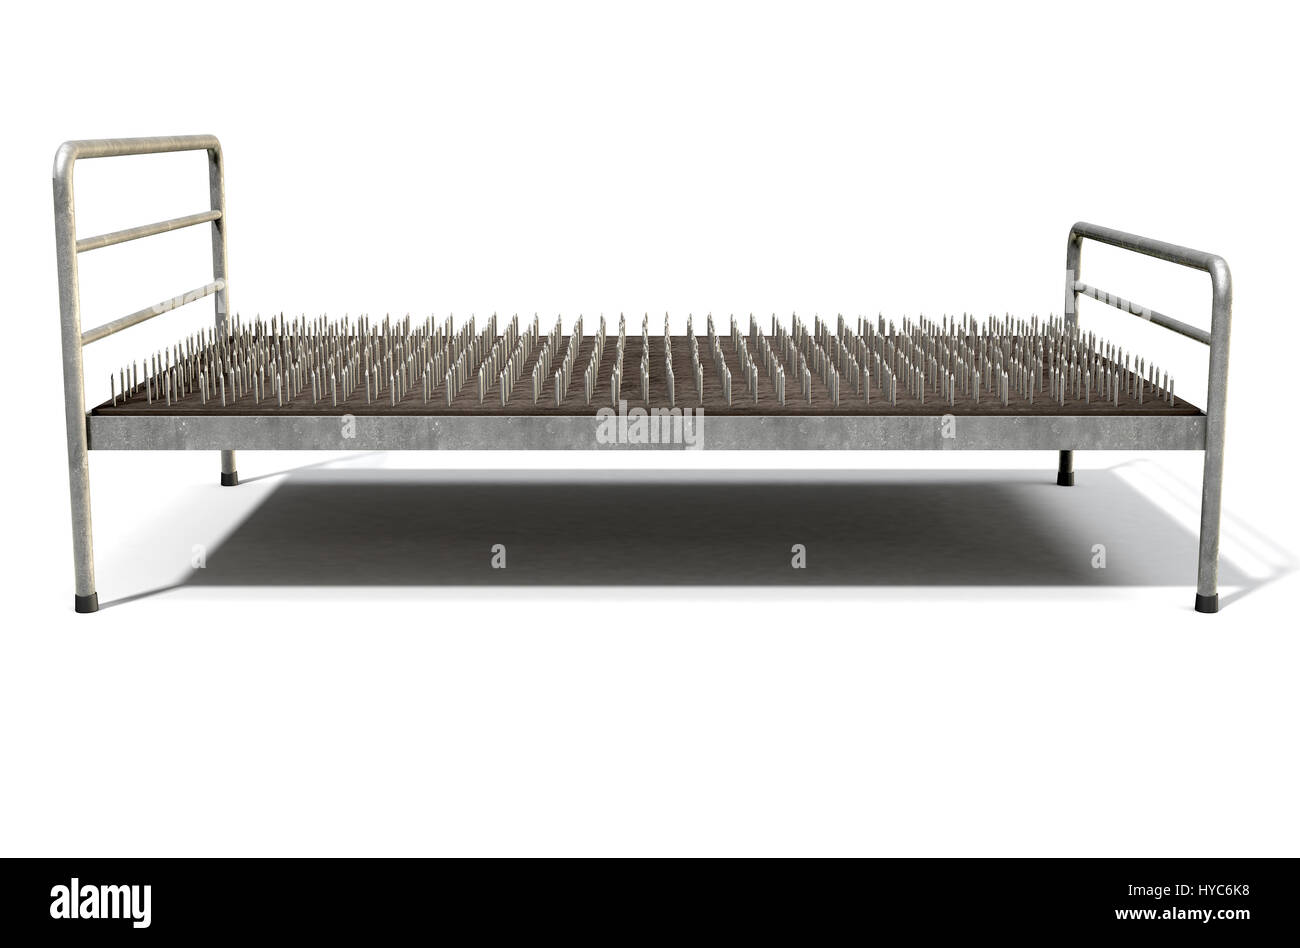 Metal Bed Frame Stockfotos & Metal Bed Frame Bilder - Alamy